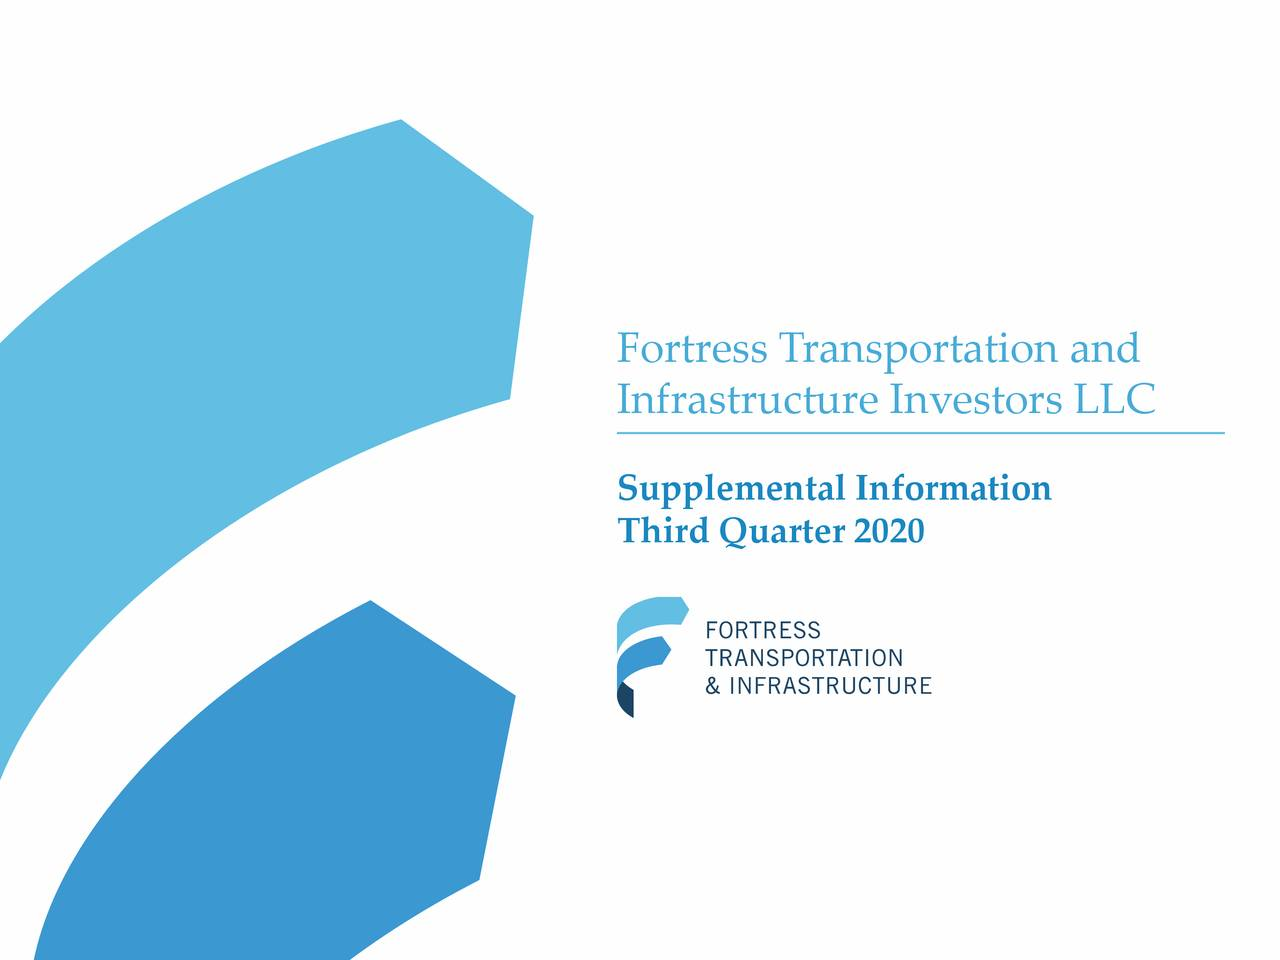 Fortress Transportation and Infrastructure Investors LLC 2020 Q3 - Results - Earnings Call Presentation (NYSE:FTAI)